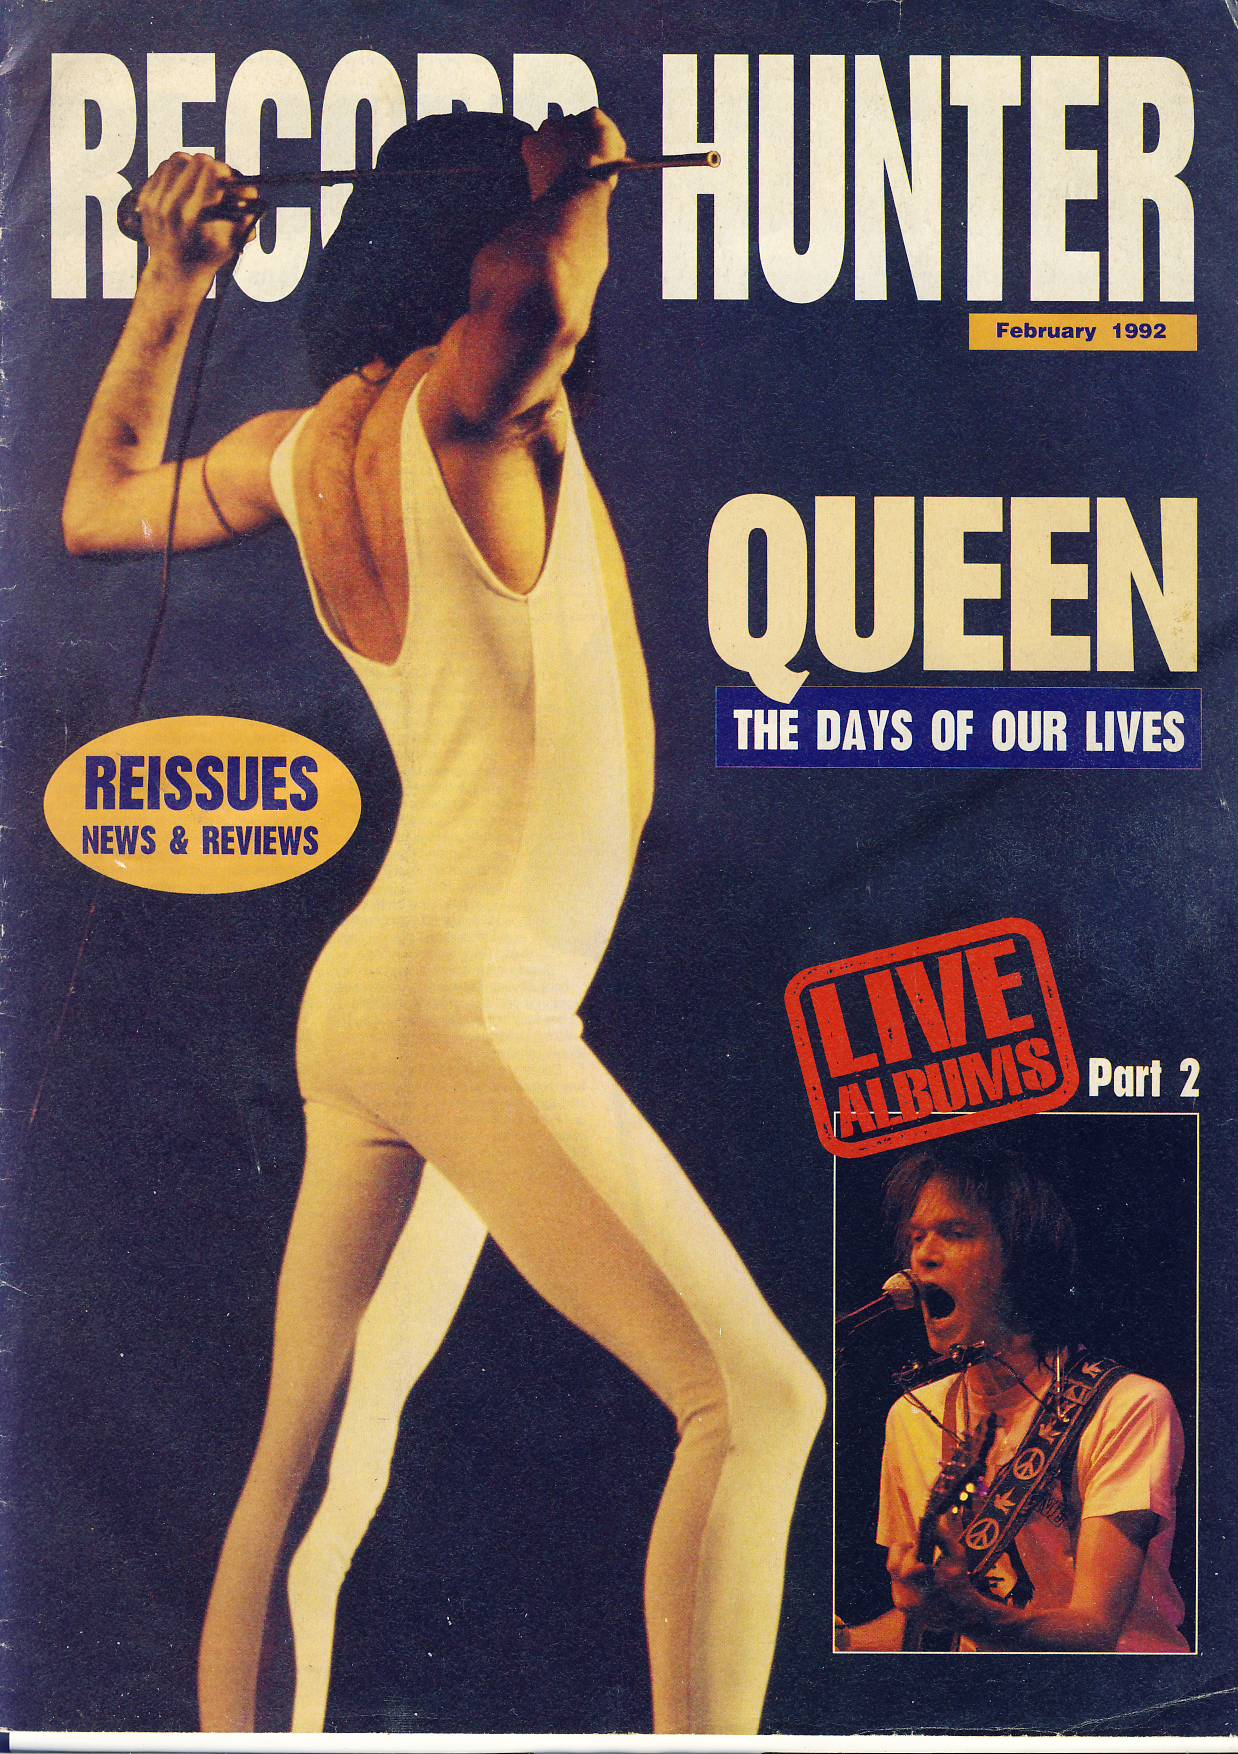 February 1992 RECORD HUNTER with QUEEN Freddy Mercury feature 24 page magazine ref101740 Reissues News & Reviews LIVE ALBUMS part 2 publication - a pre-owned item in read condition.